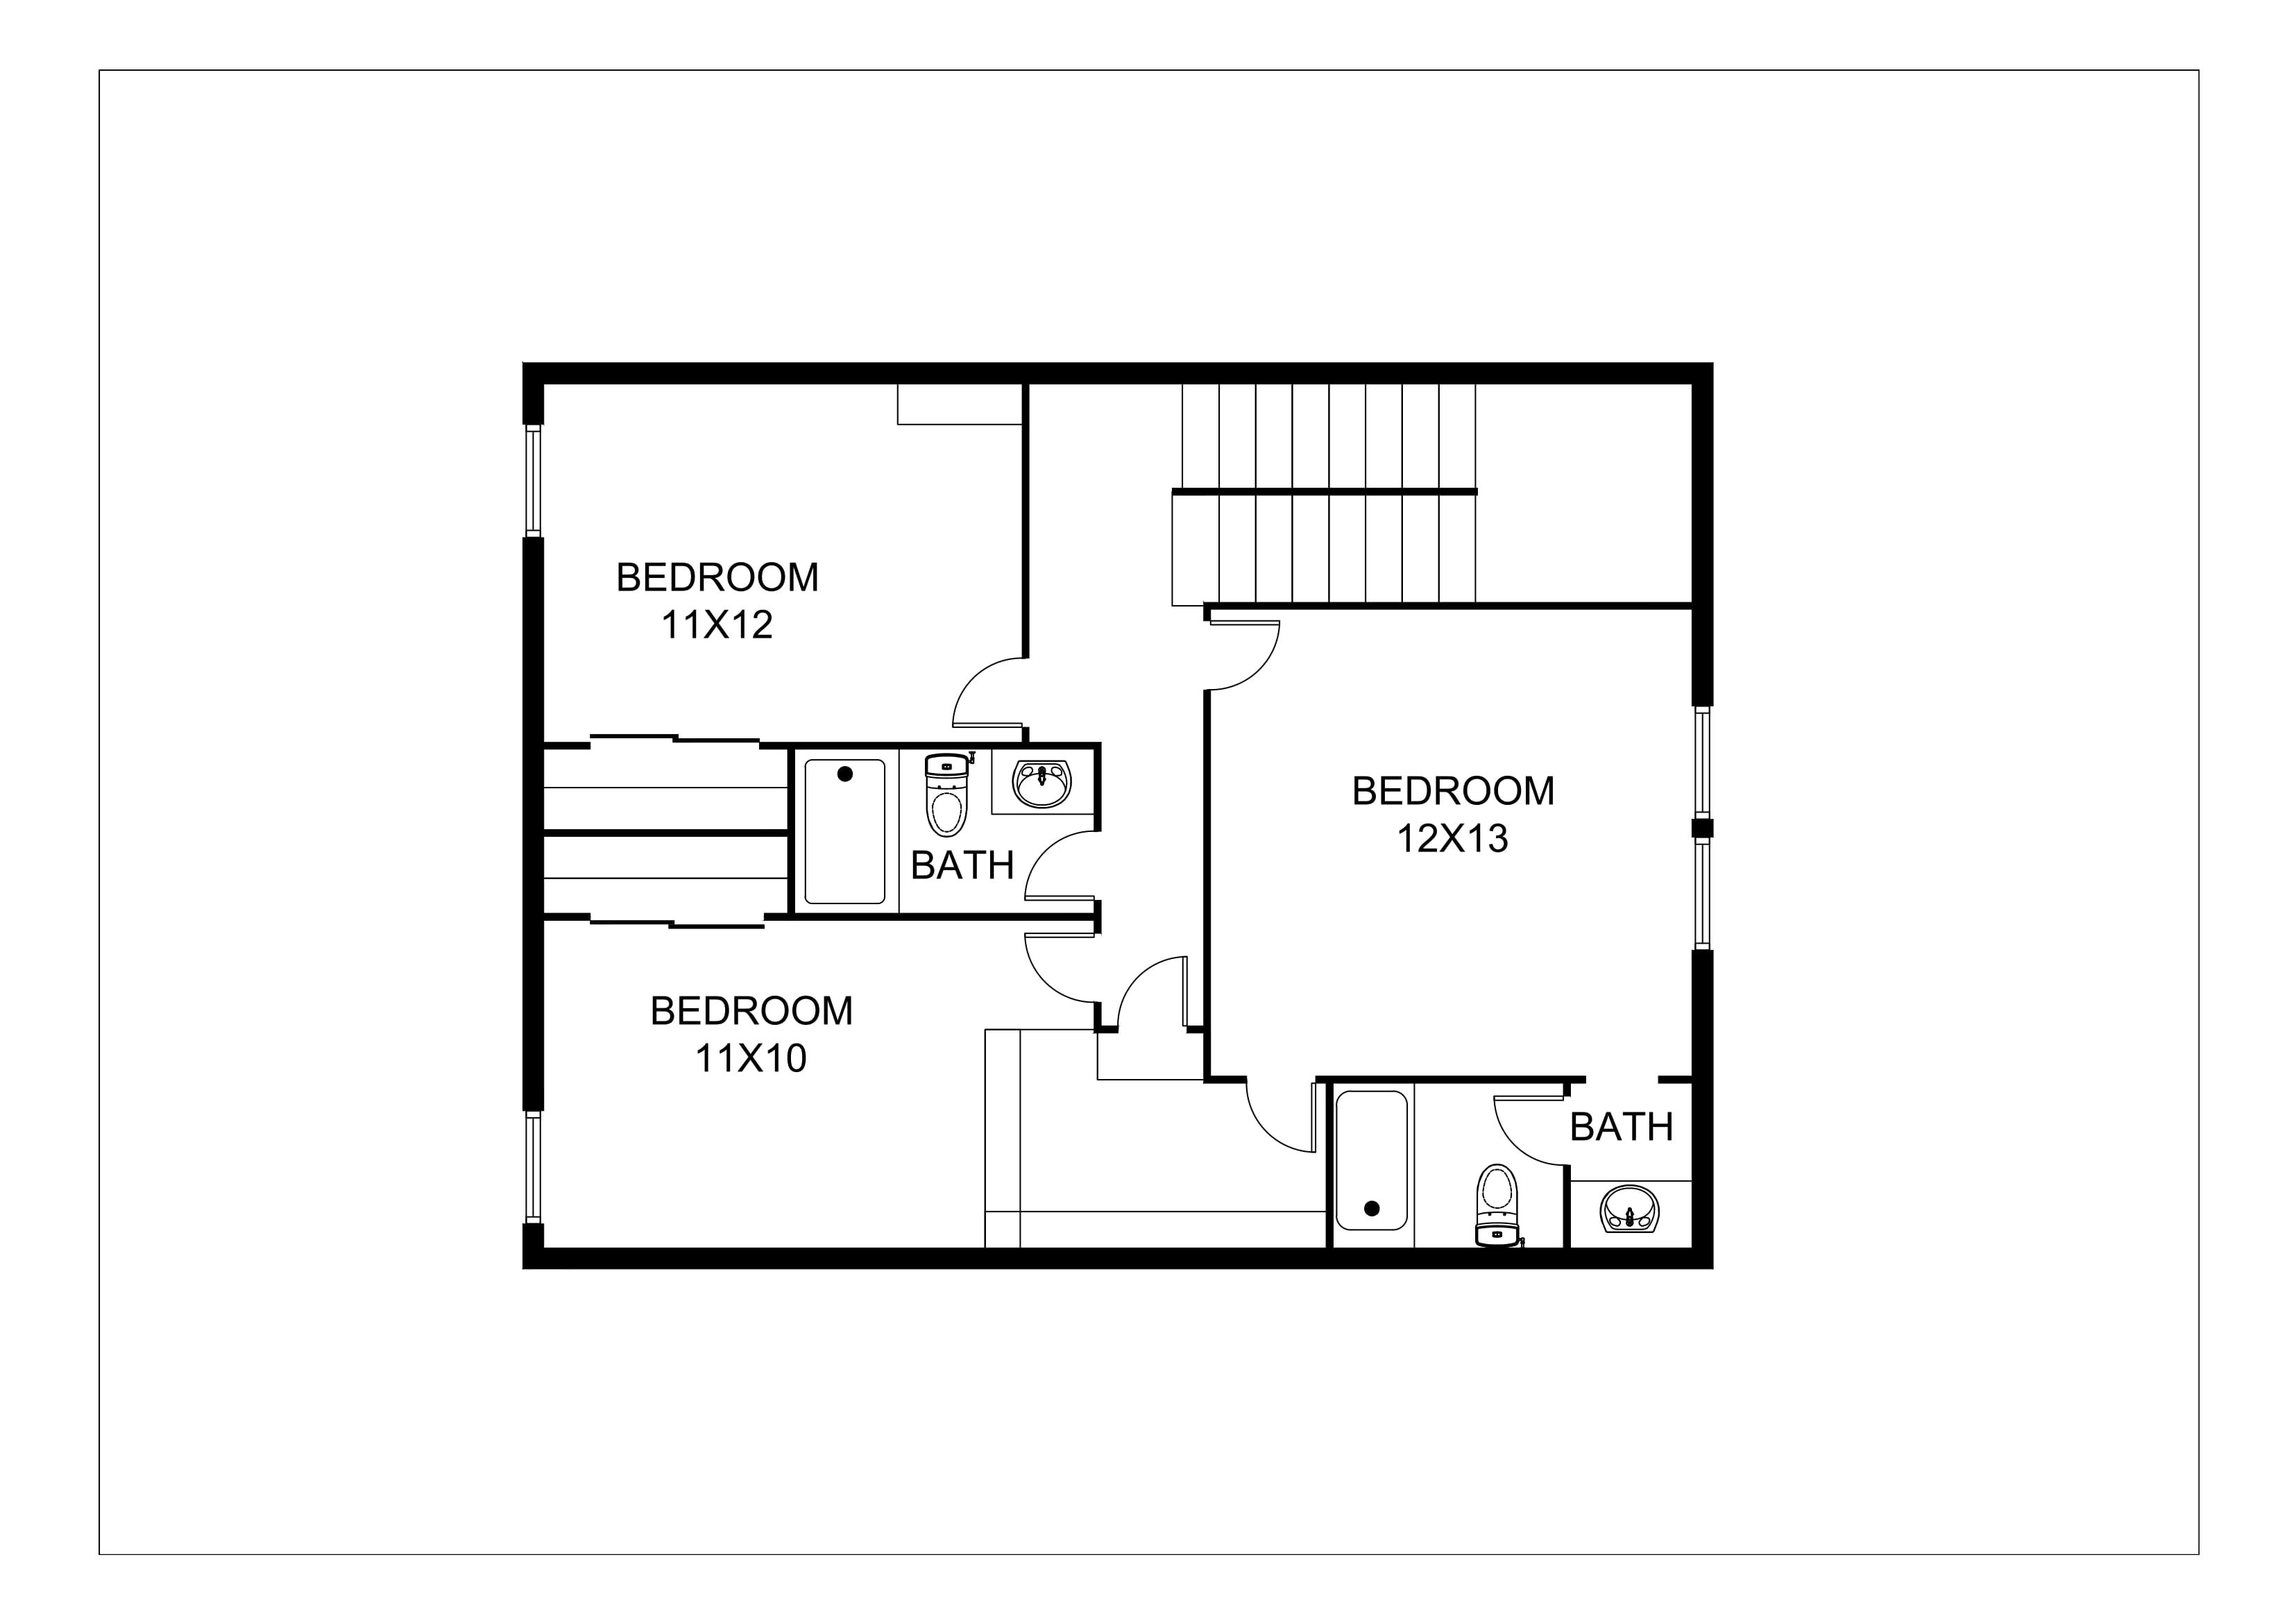 2D Floor Plan Images - Samples